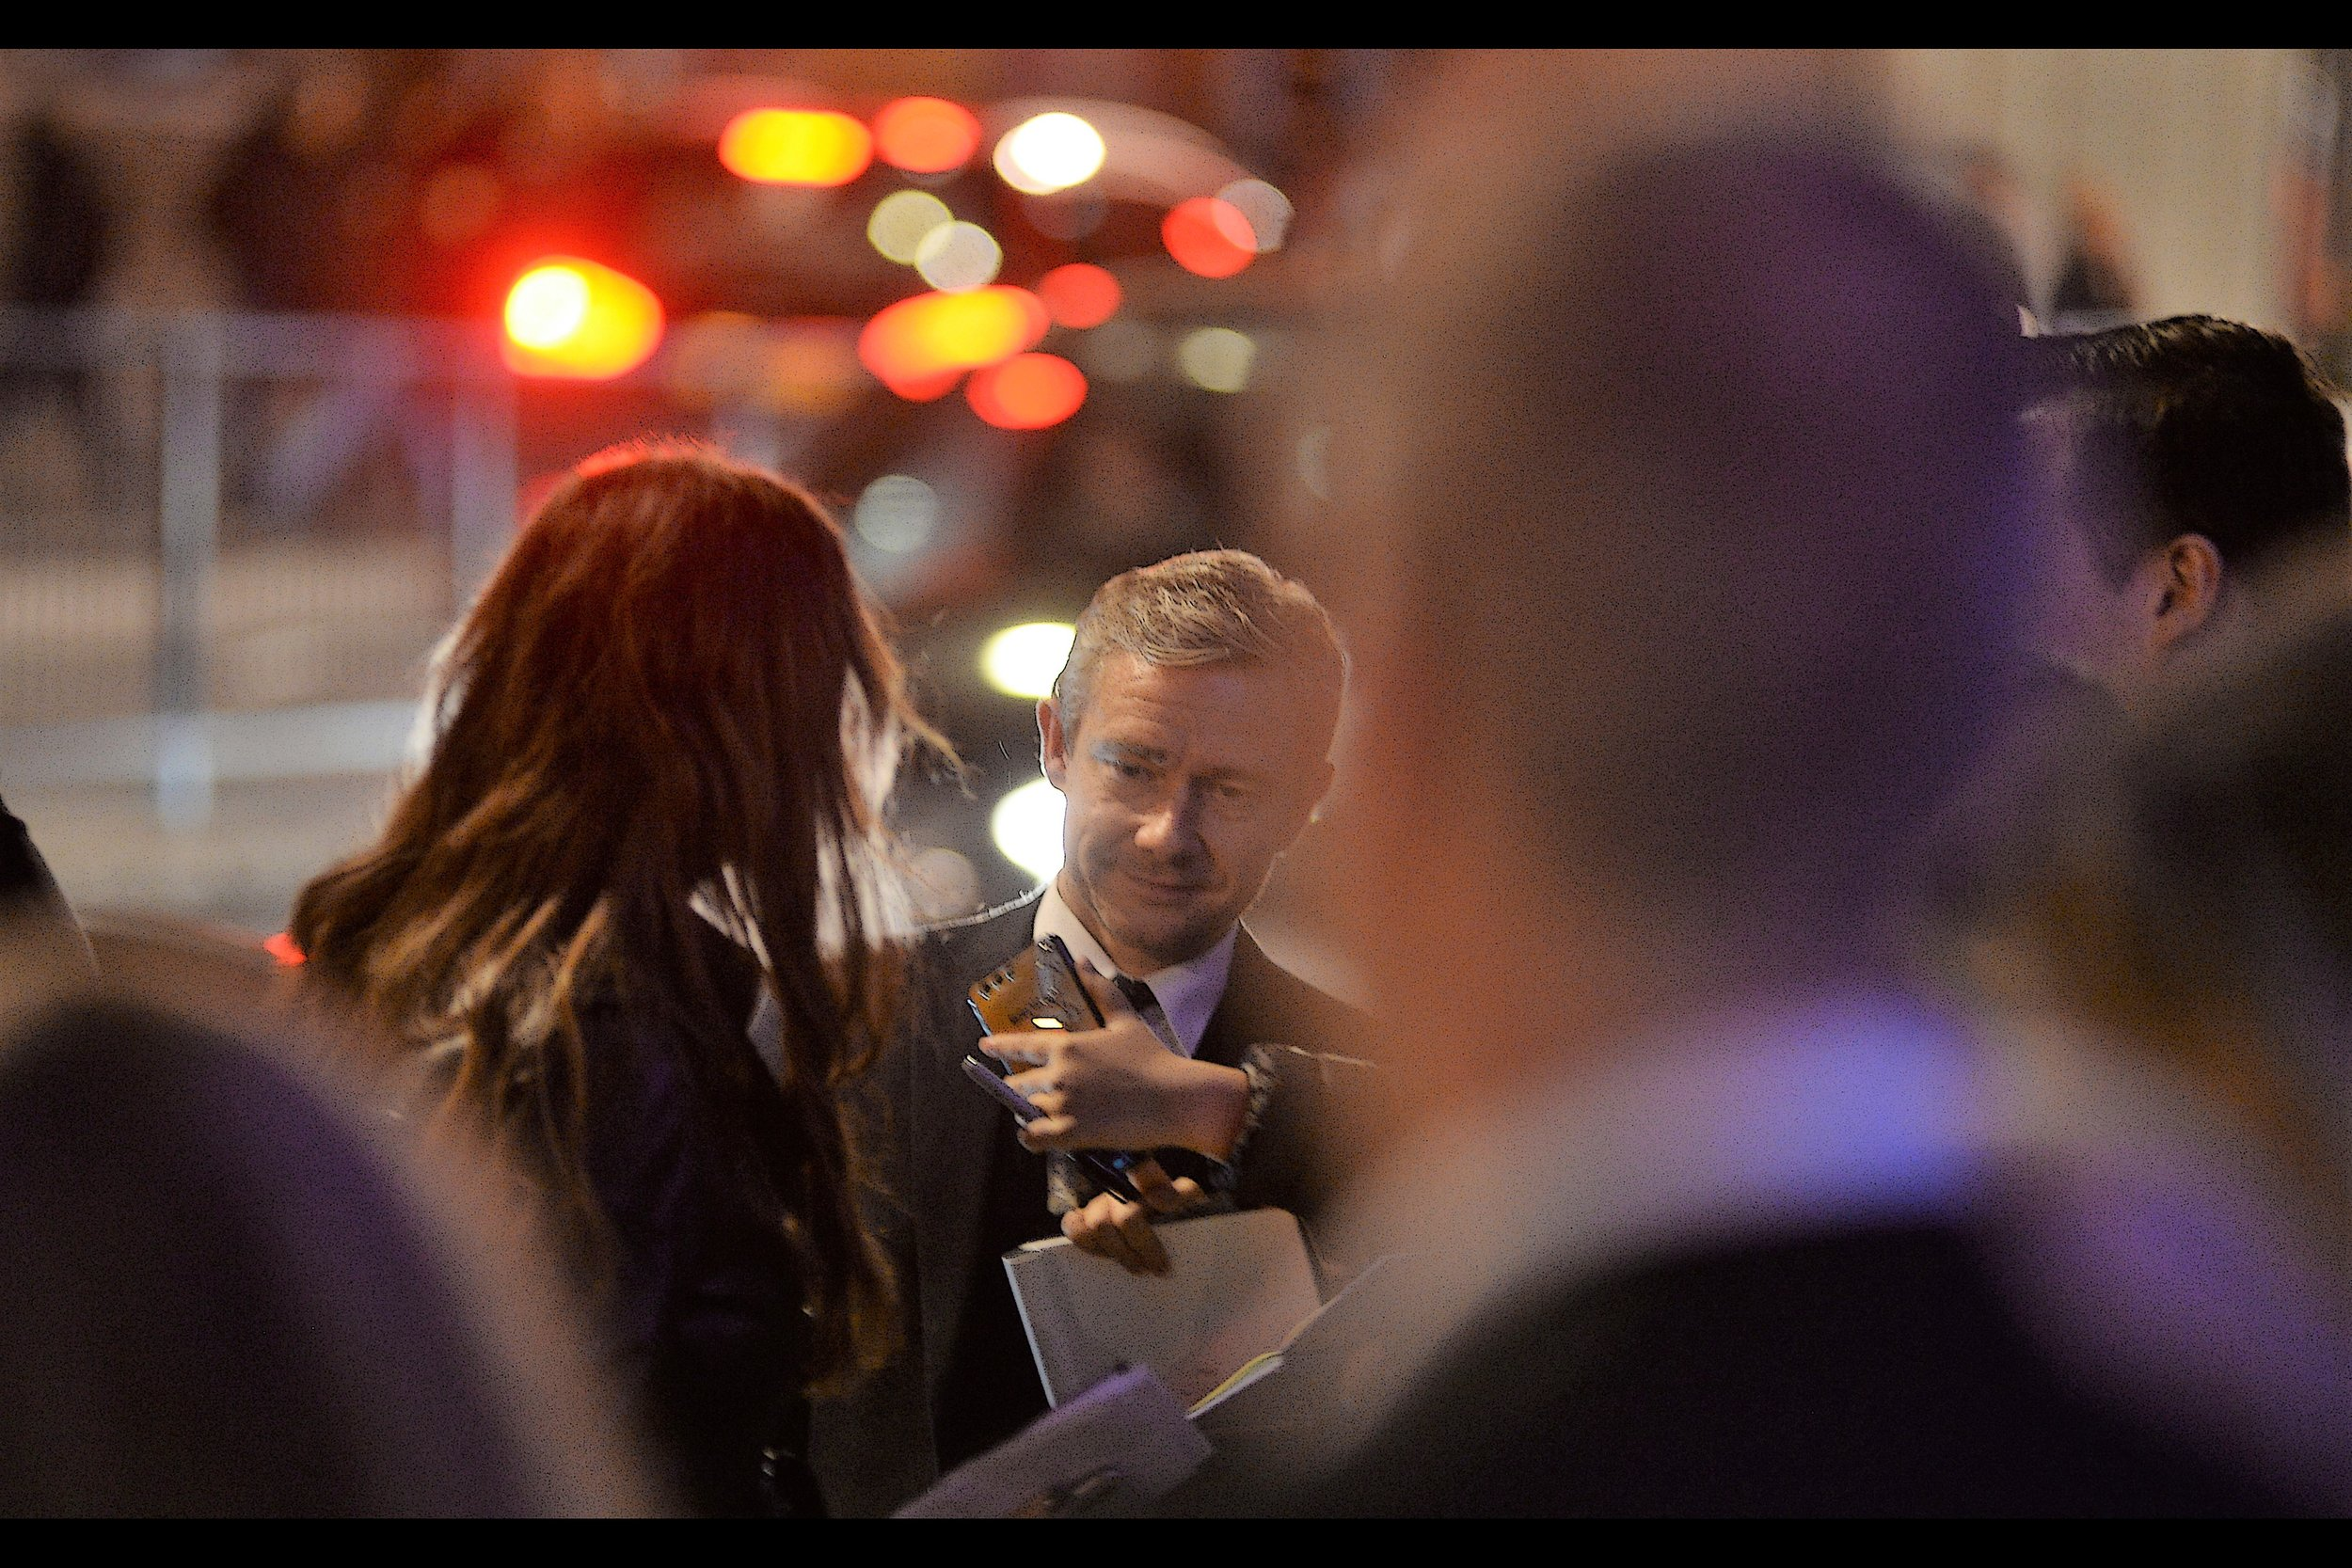 It's not the best photo of Martin Freeman I've ever taken (the one where he throws a pen in the air at last year's TV Baftas is) - but look at the sweet bokeh in the lights in the background! And, if that's your thing, the giant ear and head of the guy on the far right is pretty amazing too!